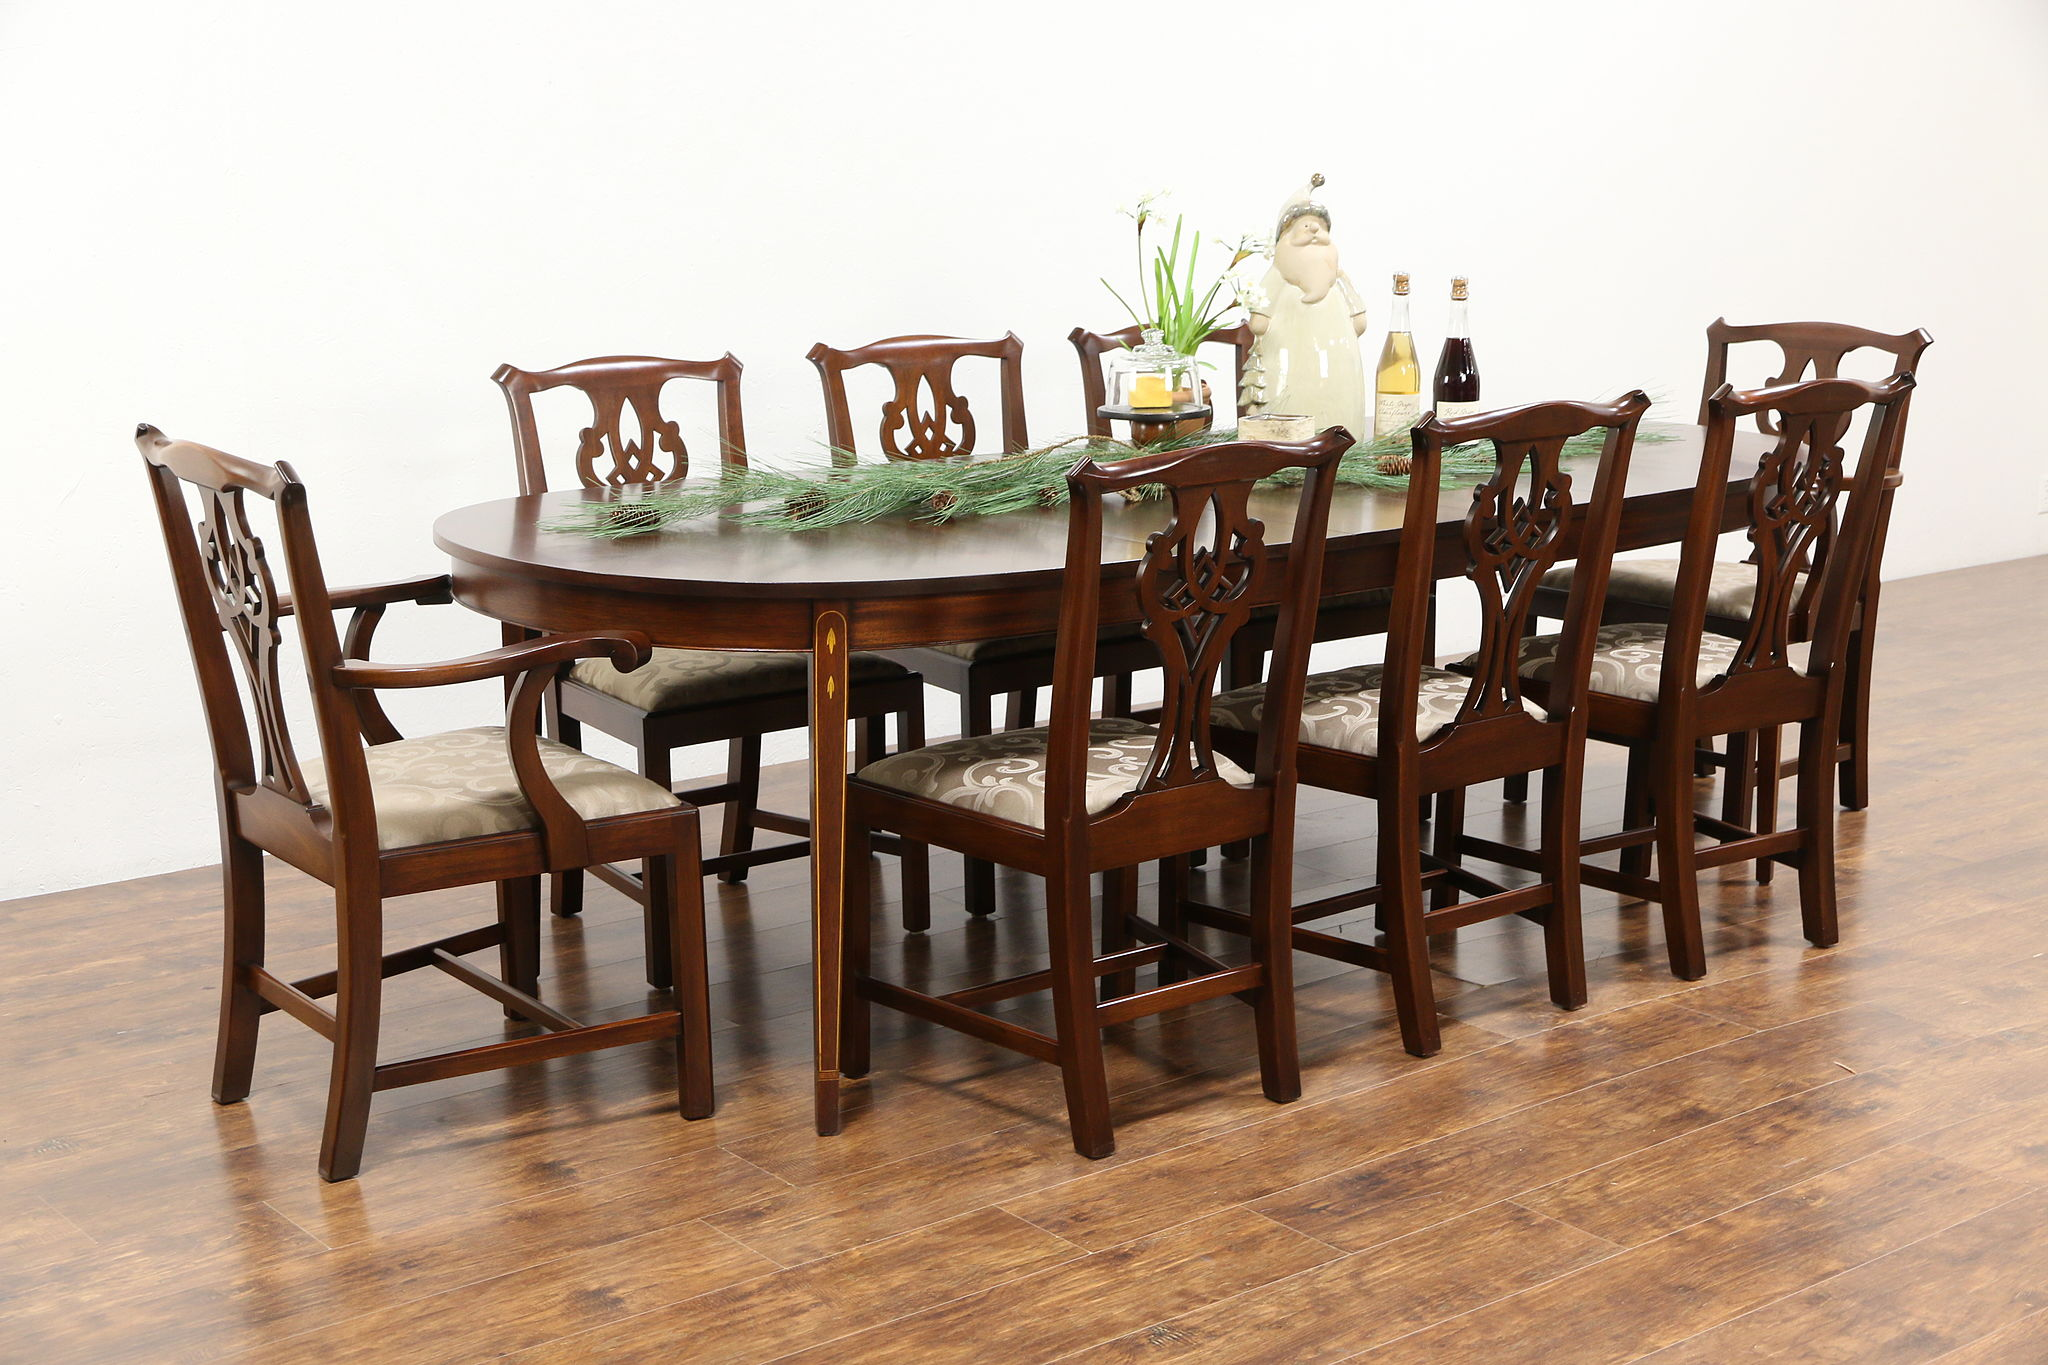 Genial Traditional Mahogany Dining Set, Table 3 Leaves, 8 Chairs, Signed Henkel  Harris